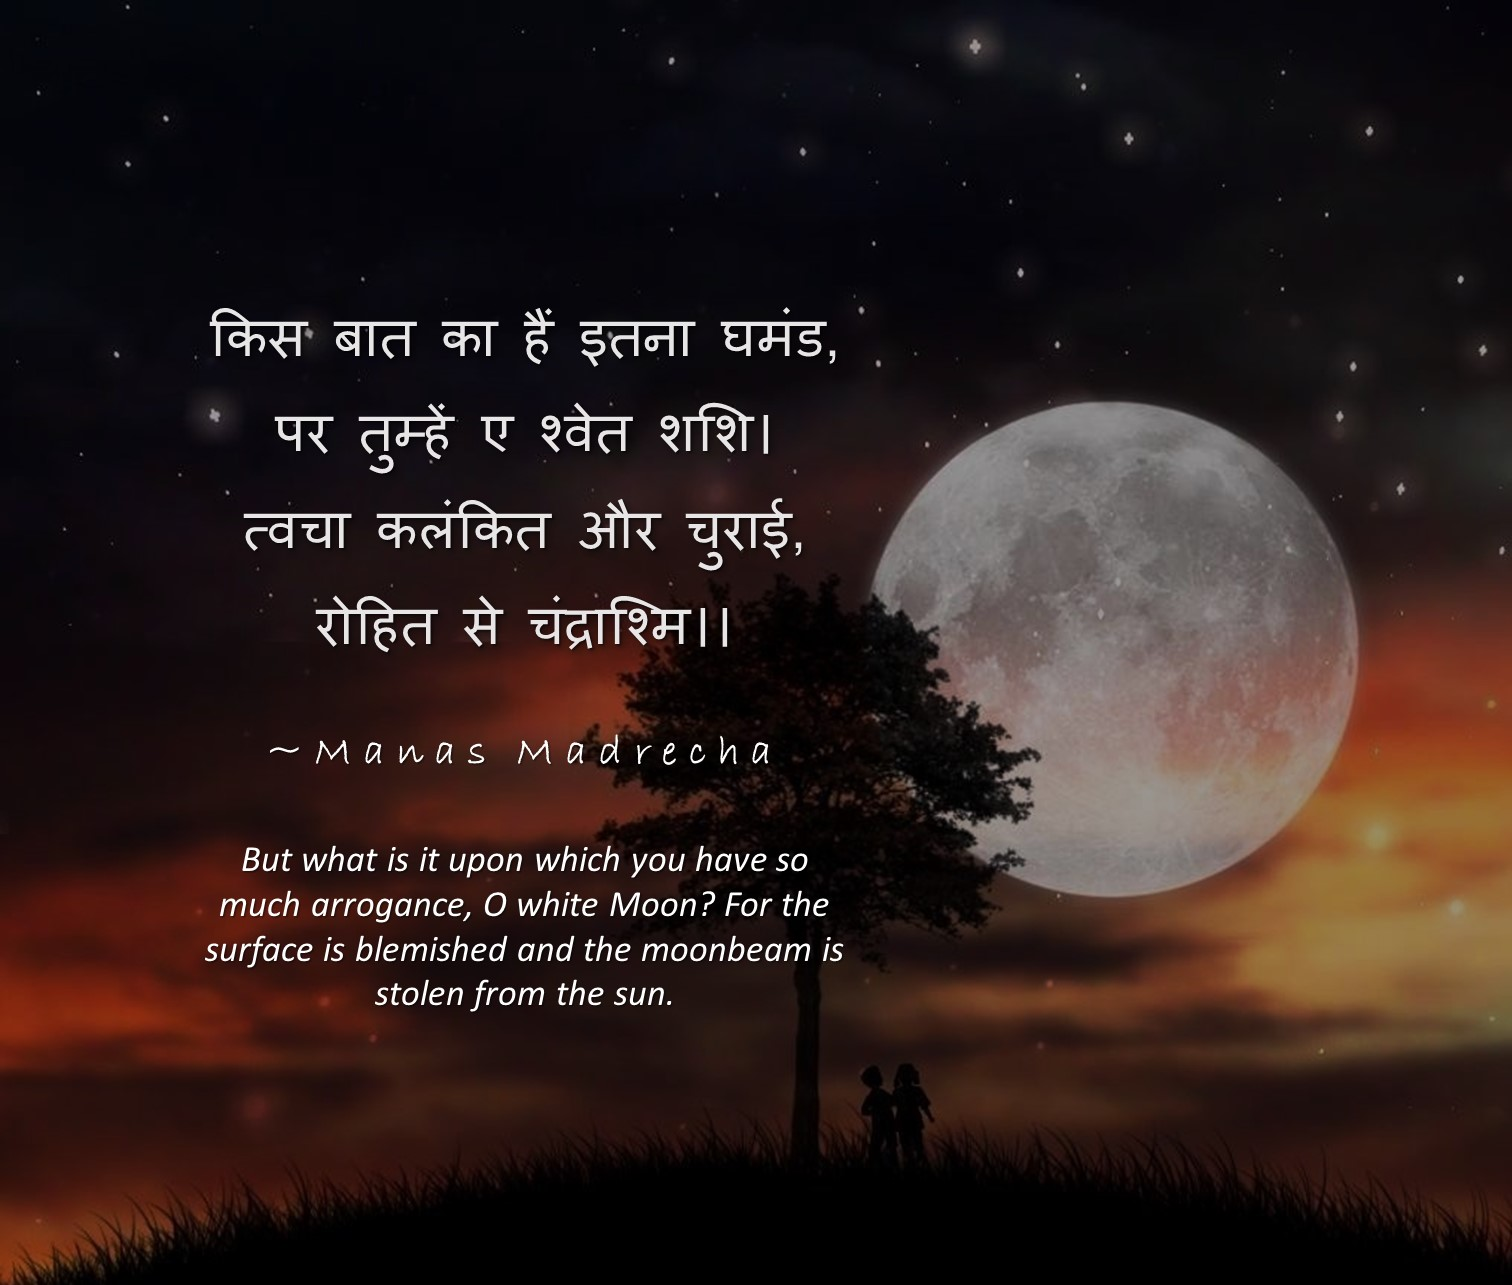 Quotes About Full Moon Loneliness  Hindi Poem On Moon  Manas Madrecha